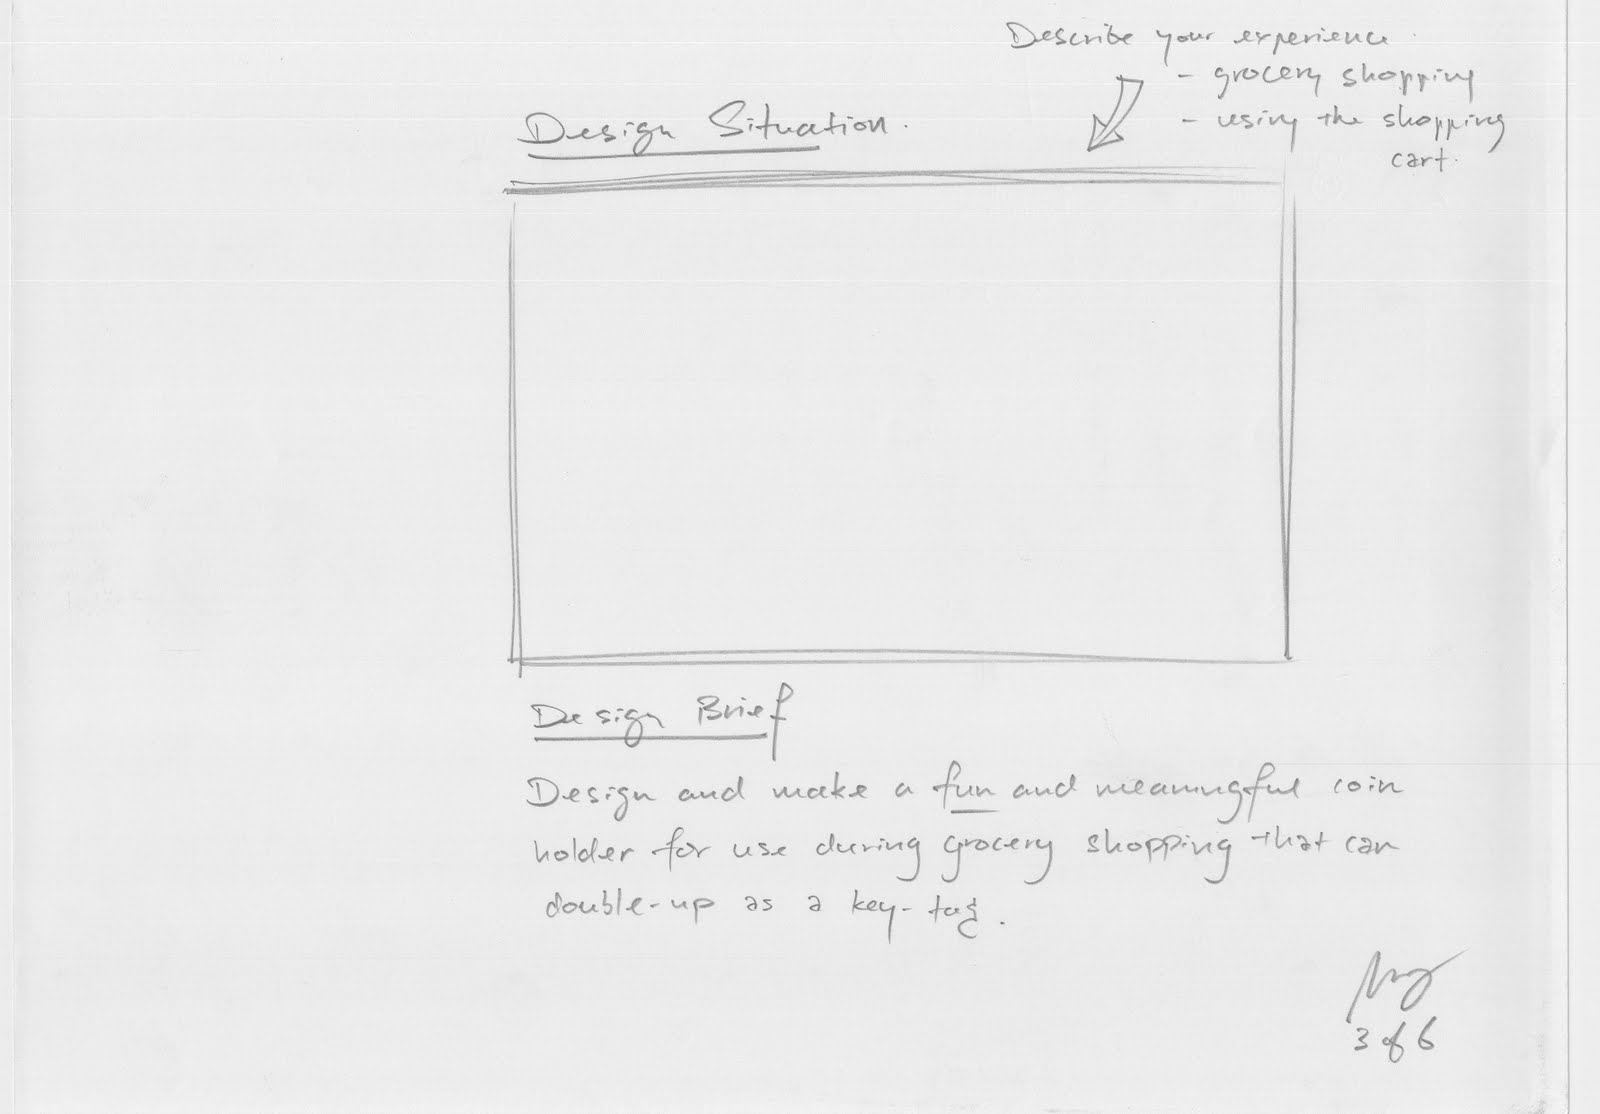 Design journal sos dollar key tag project part 1 design schedule for design situation writing to research for idea generation ccuart Gallery